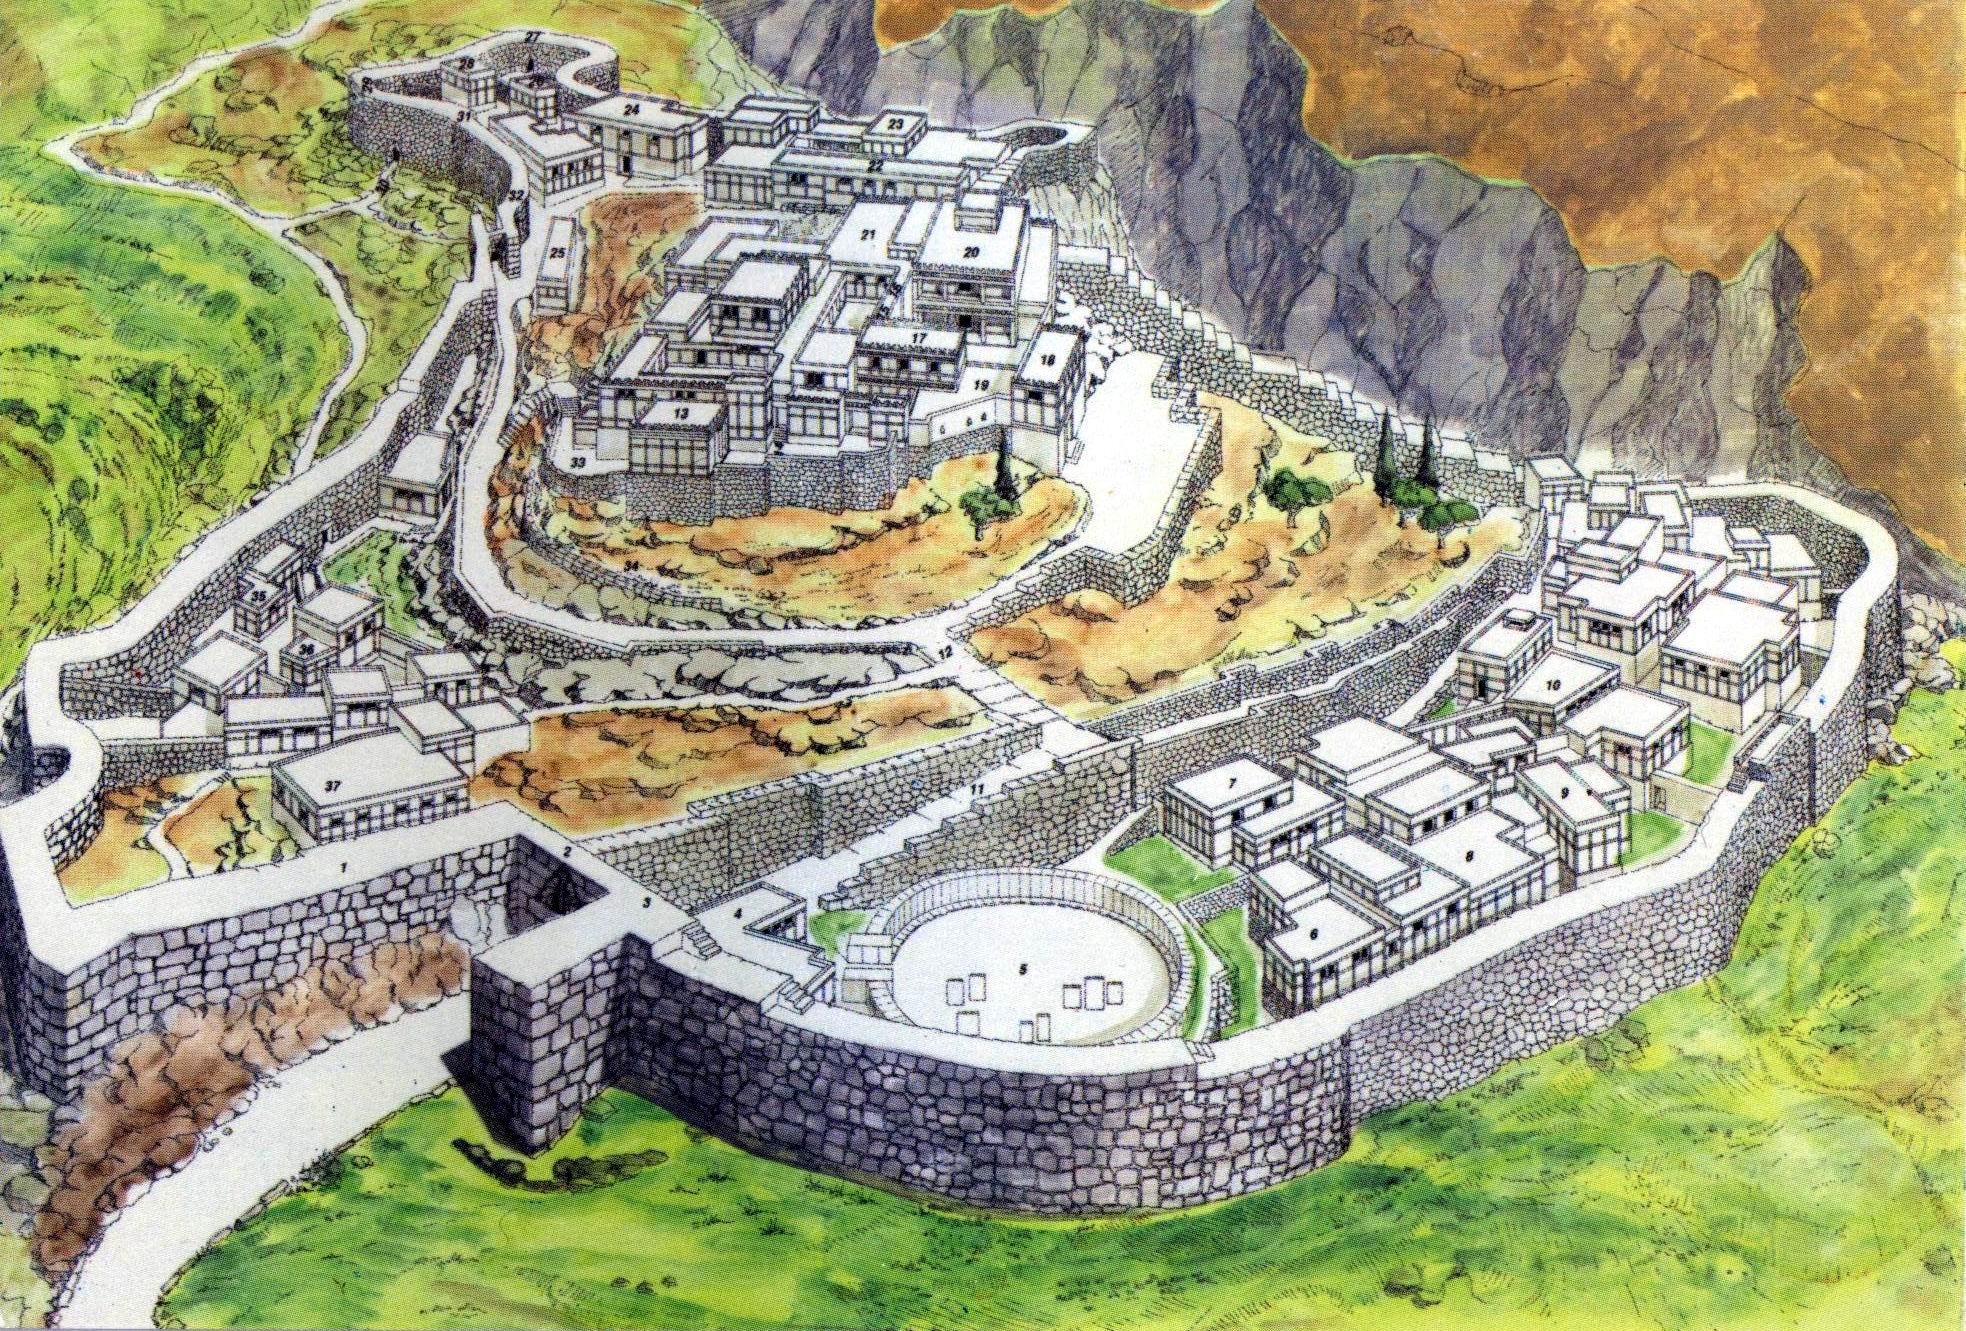 02 An imaginary scene of the ancient Mycenae